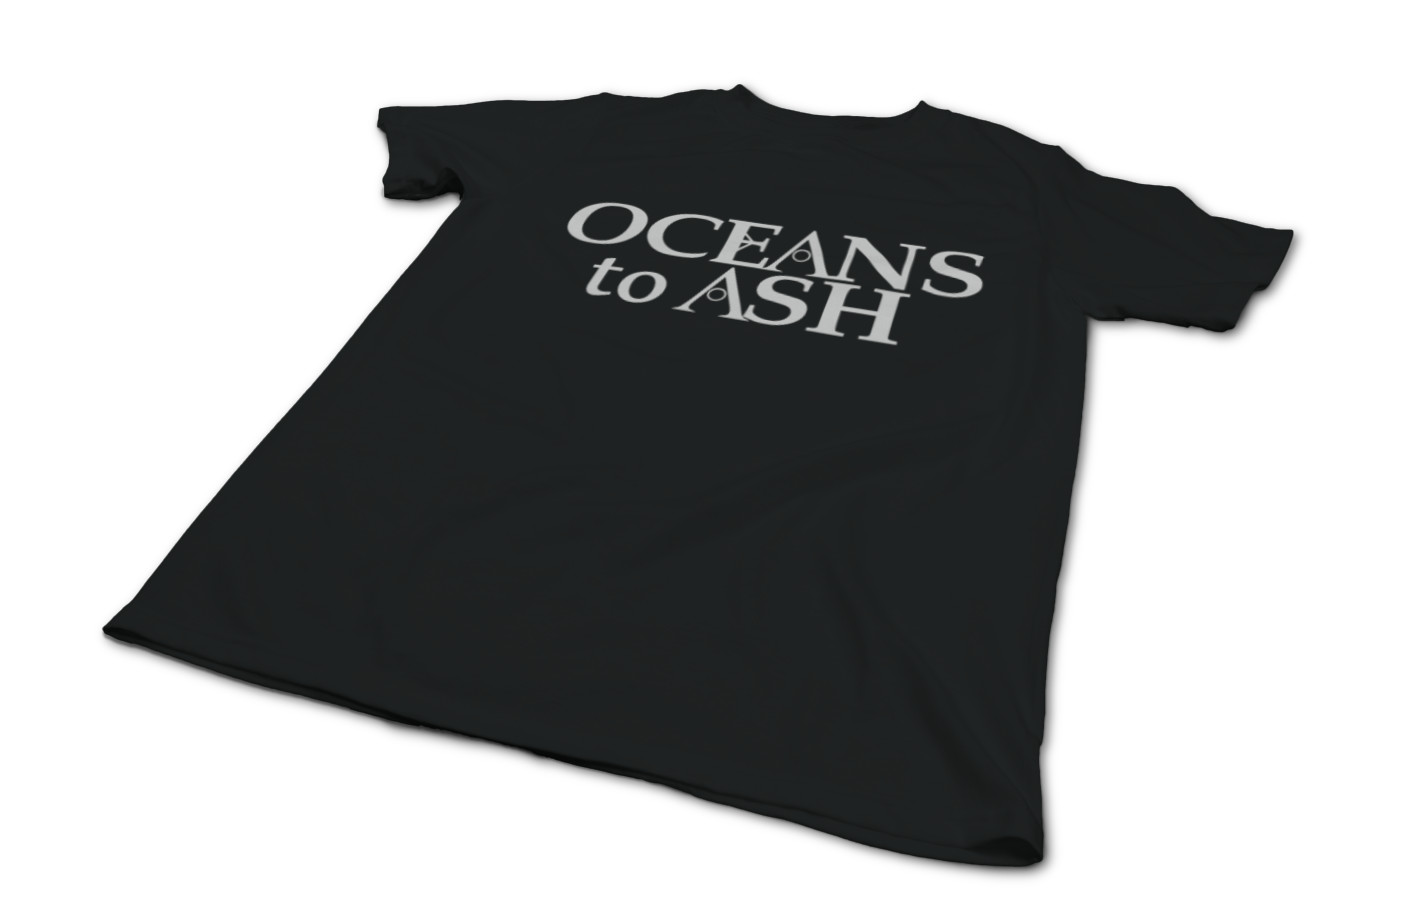 Oceans to ash oceans to ash   name   black 1537978337